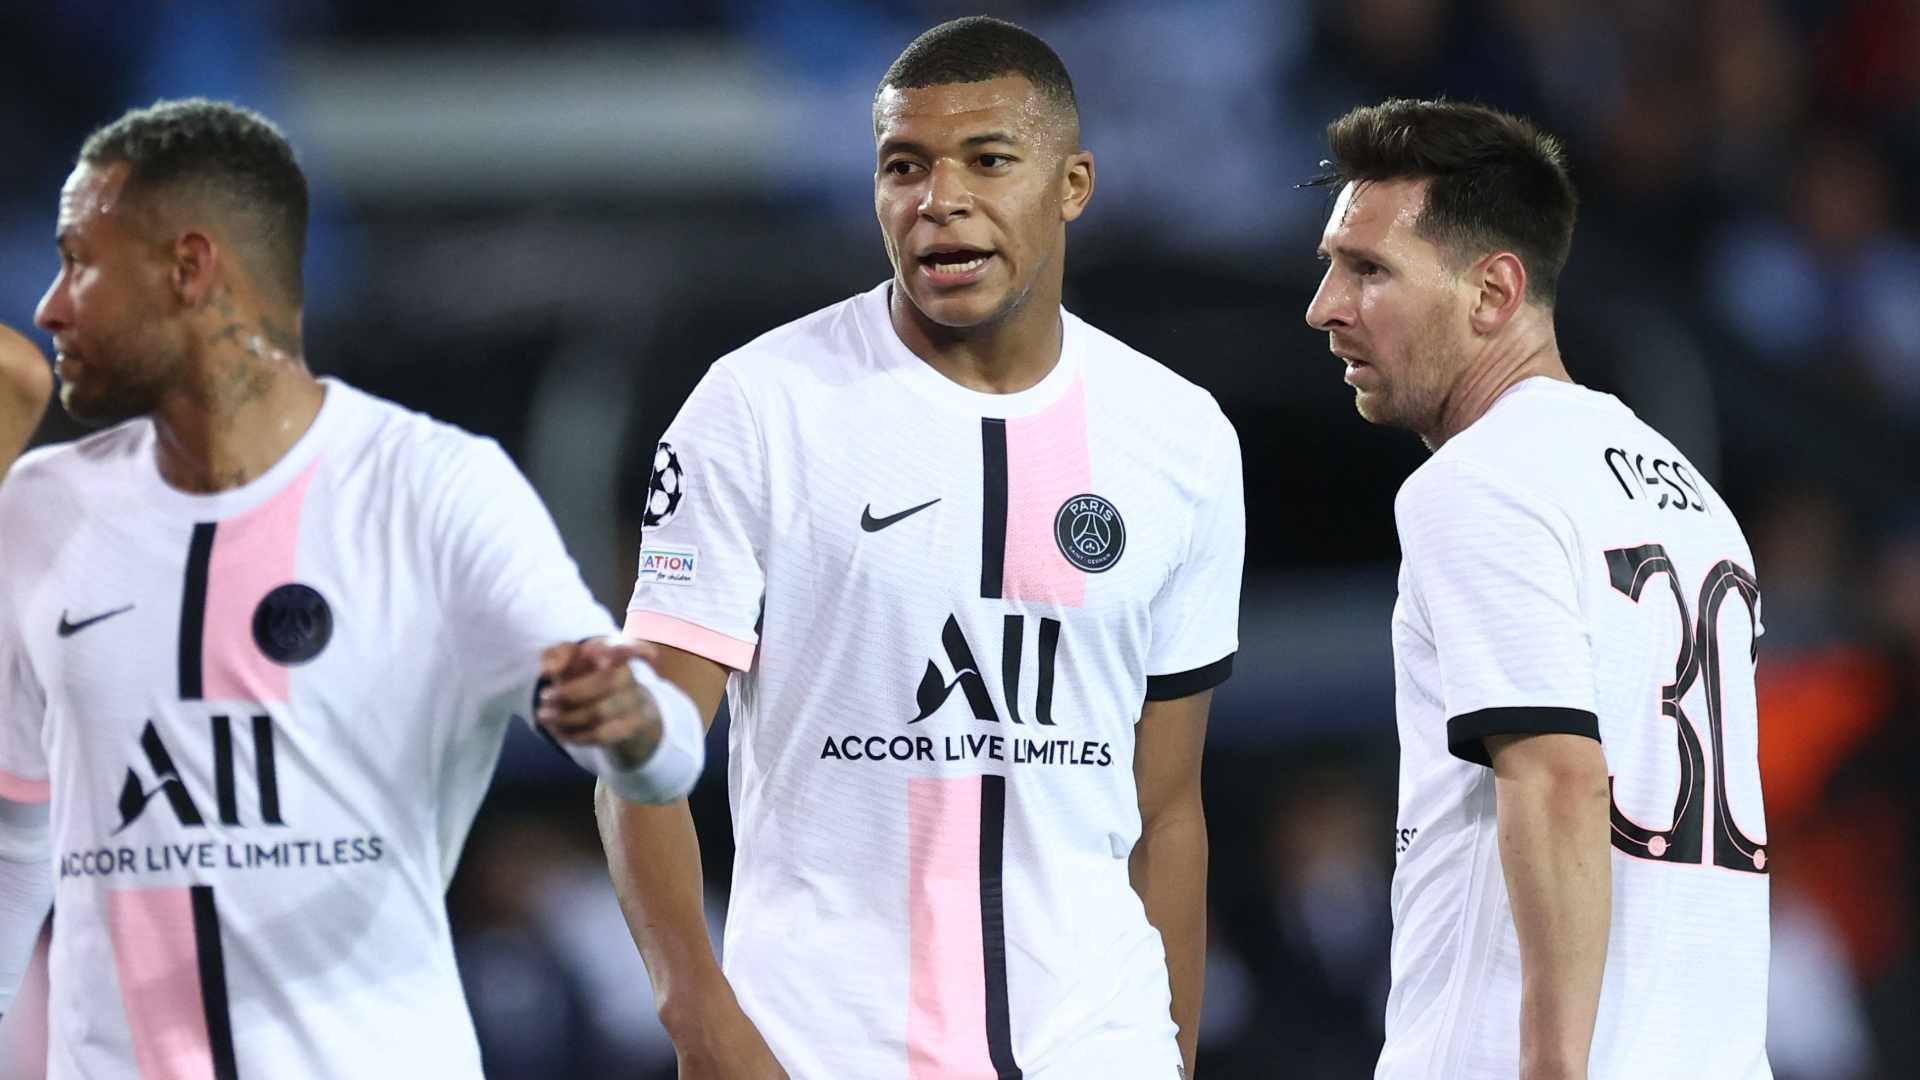 Mbappe admits to calling Neymar a 'bum' in bench outburst but insists there is no rift at PSG